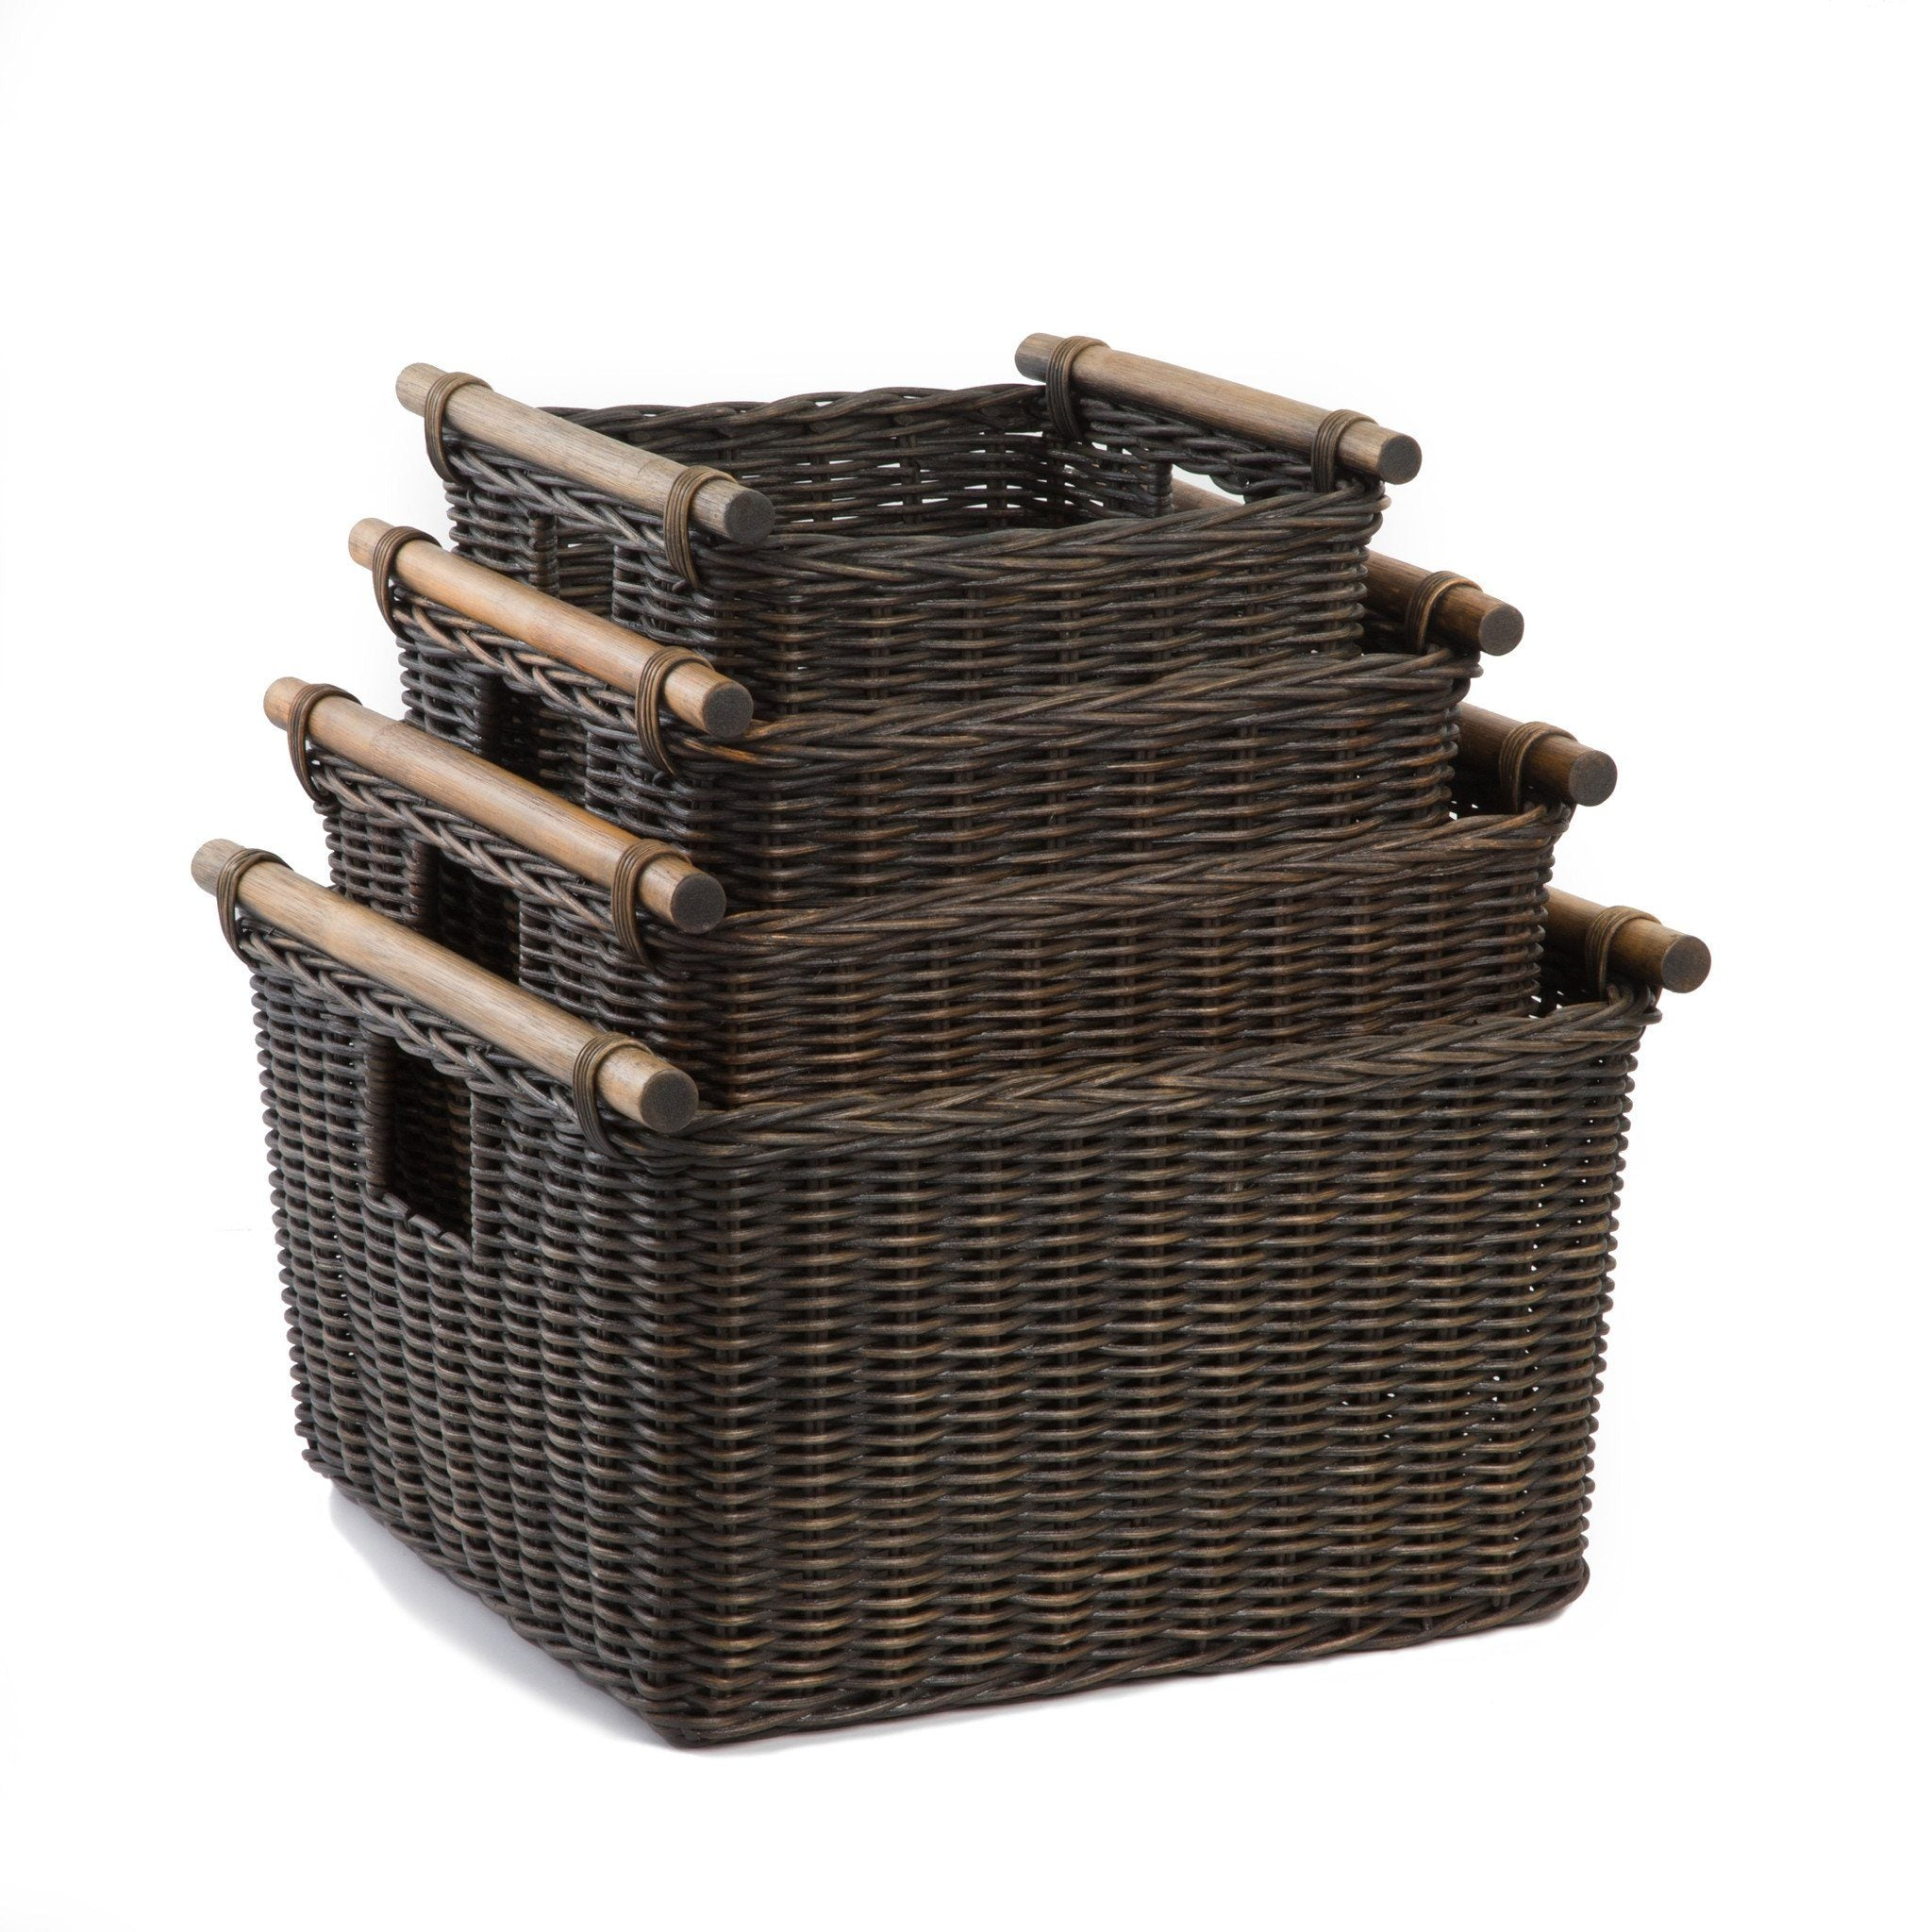 The Basket Lady Deep Pole Handle Wicker Storage Baskets In Antique Walnut  Brown, 4 Sizes ...